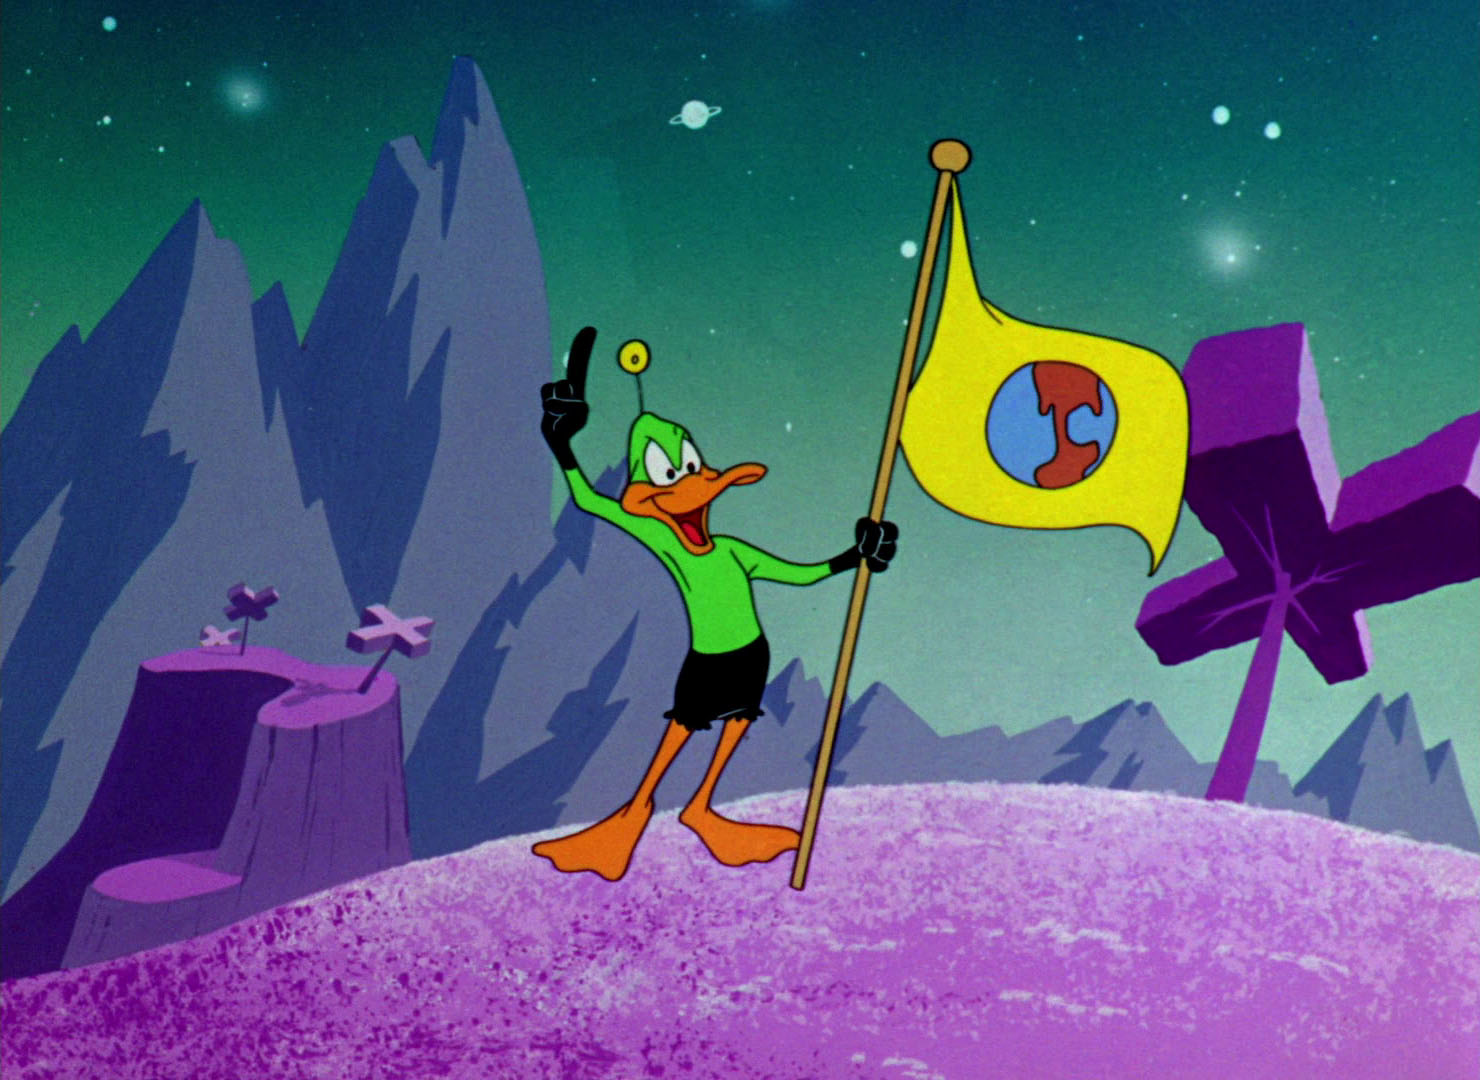 ryan u0026 39 s blog   u0026quot duck dodgers in the 24th and a half century